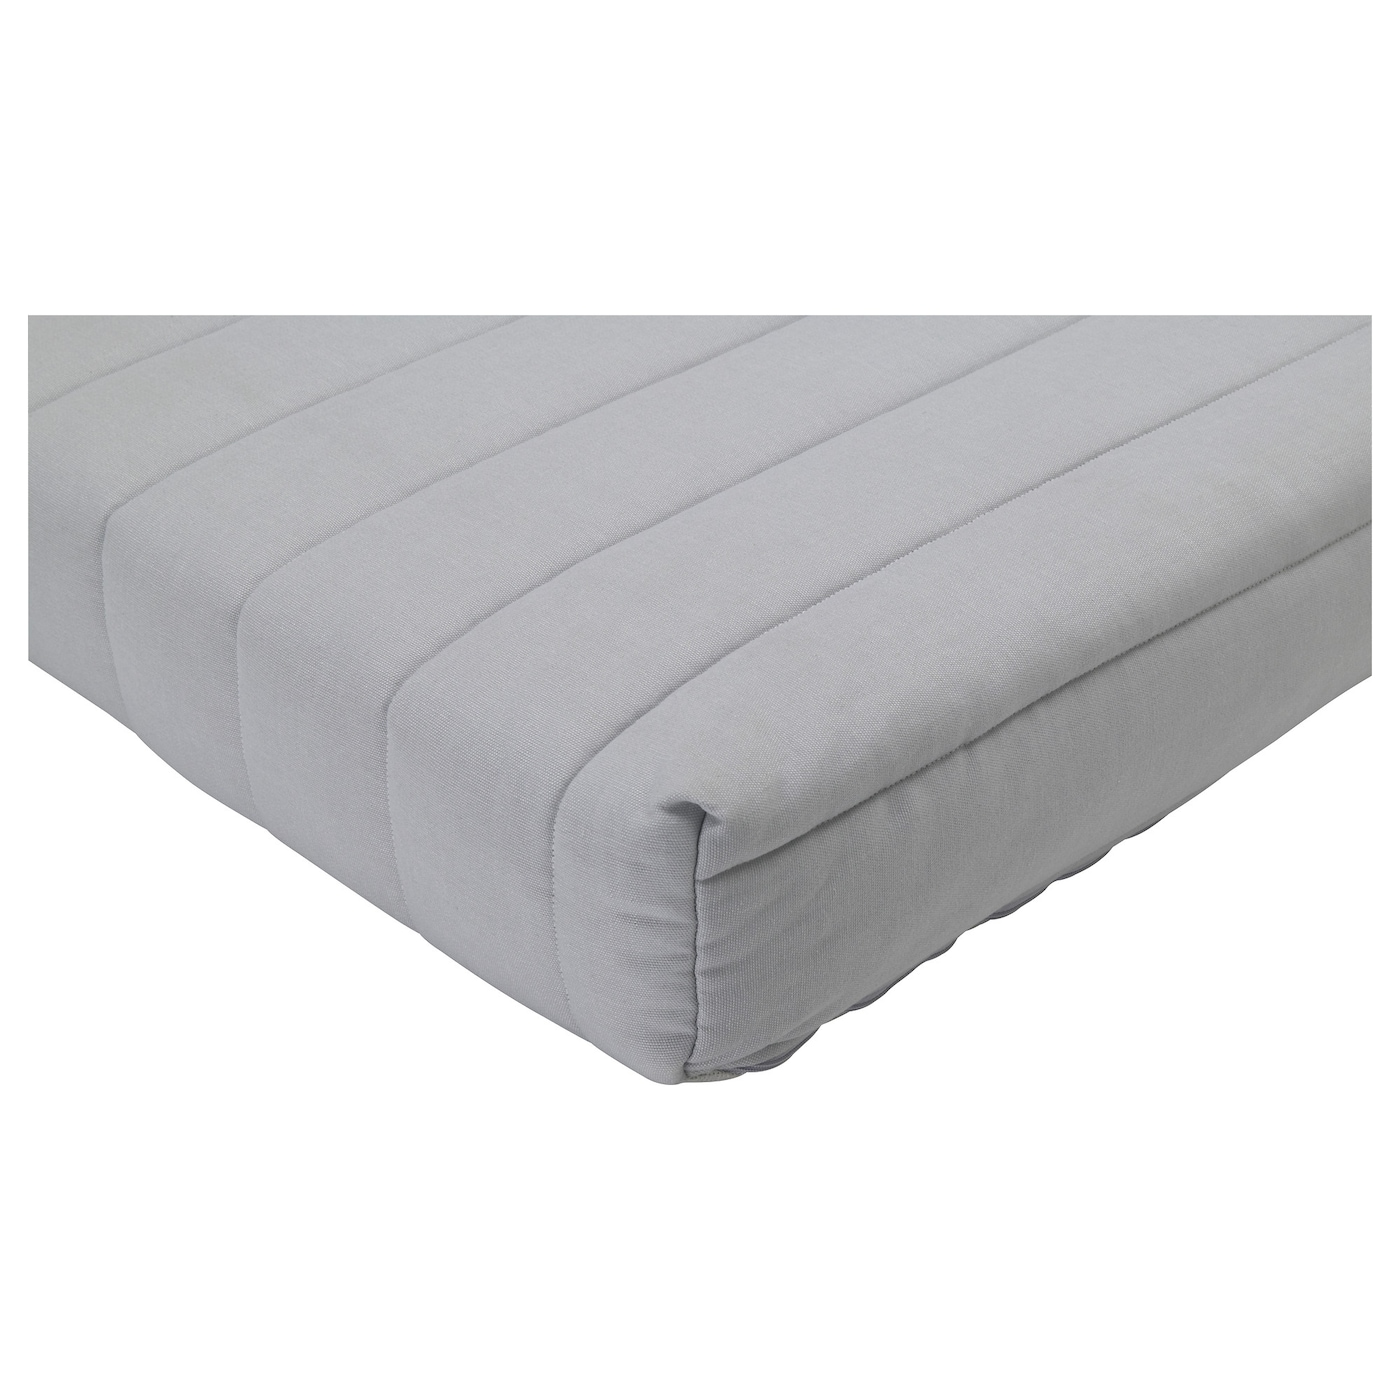 IKEA IKEA PS MURBO mattress Comfortable and firm foam mattress for use every night.